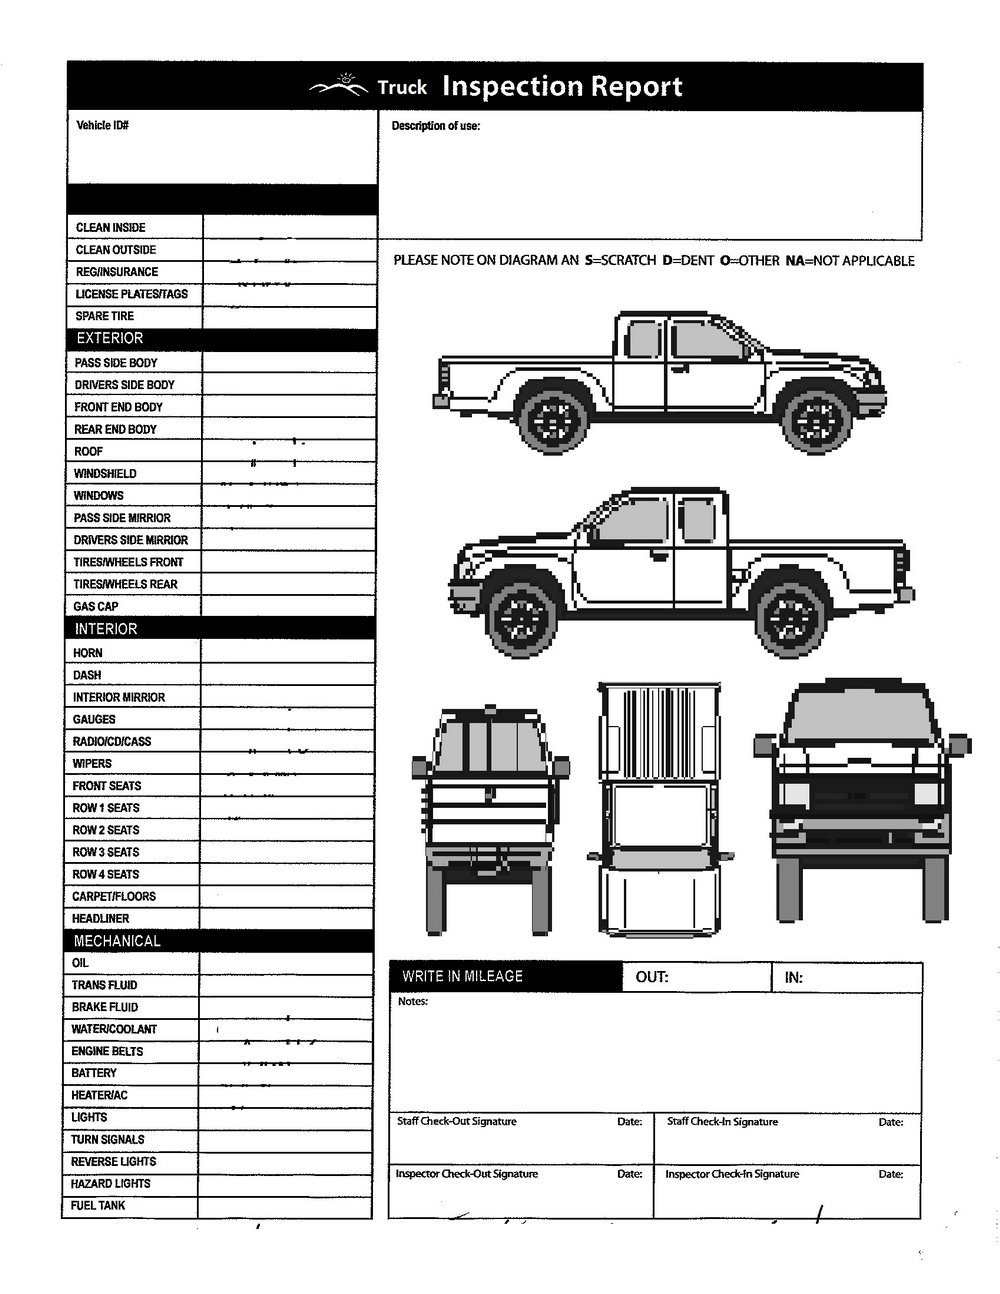 Vehicle Inspection Form Template